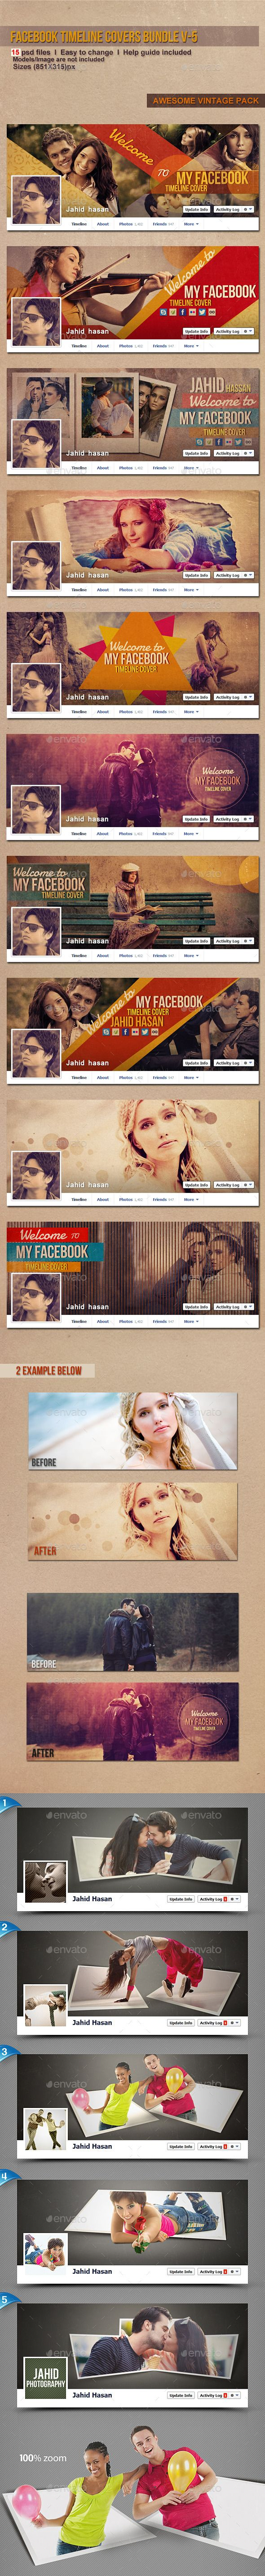 FB Timeline Covers Bundle V-5